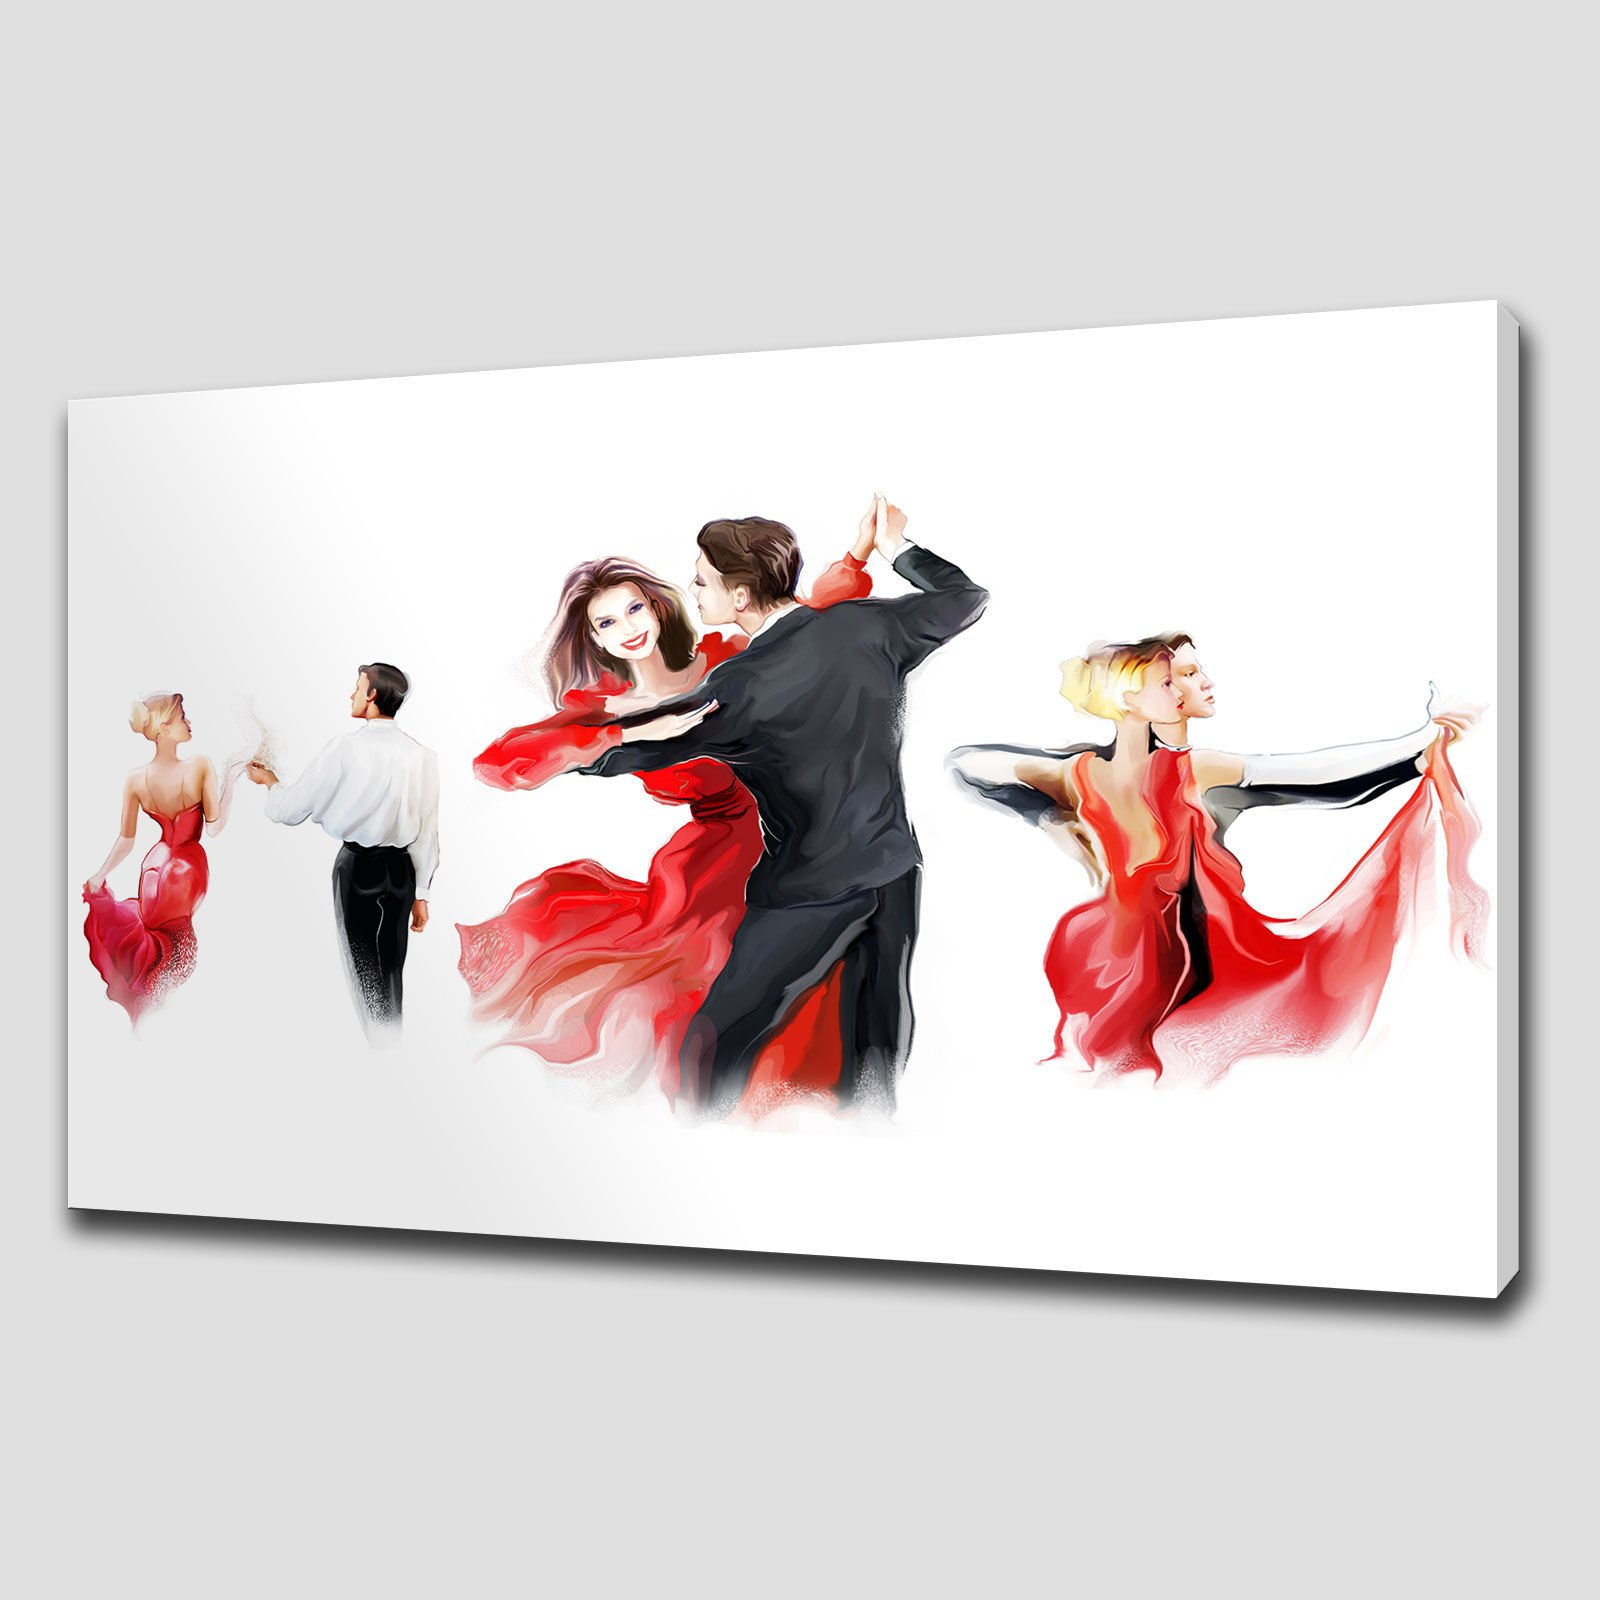 Wall Decor Prints Canvas : Canvas print pictures high quality handmade free next